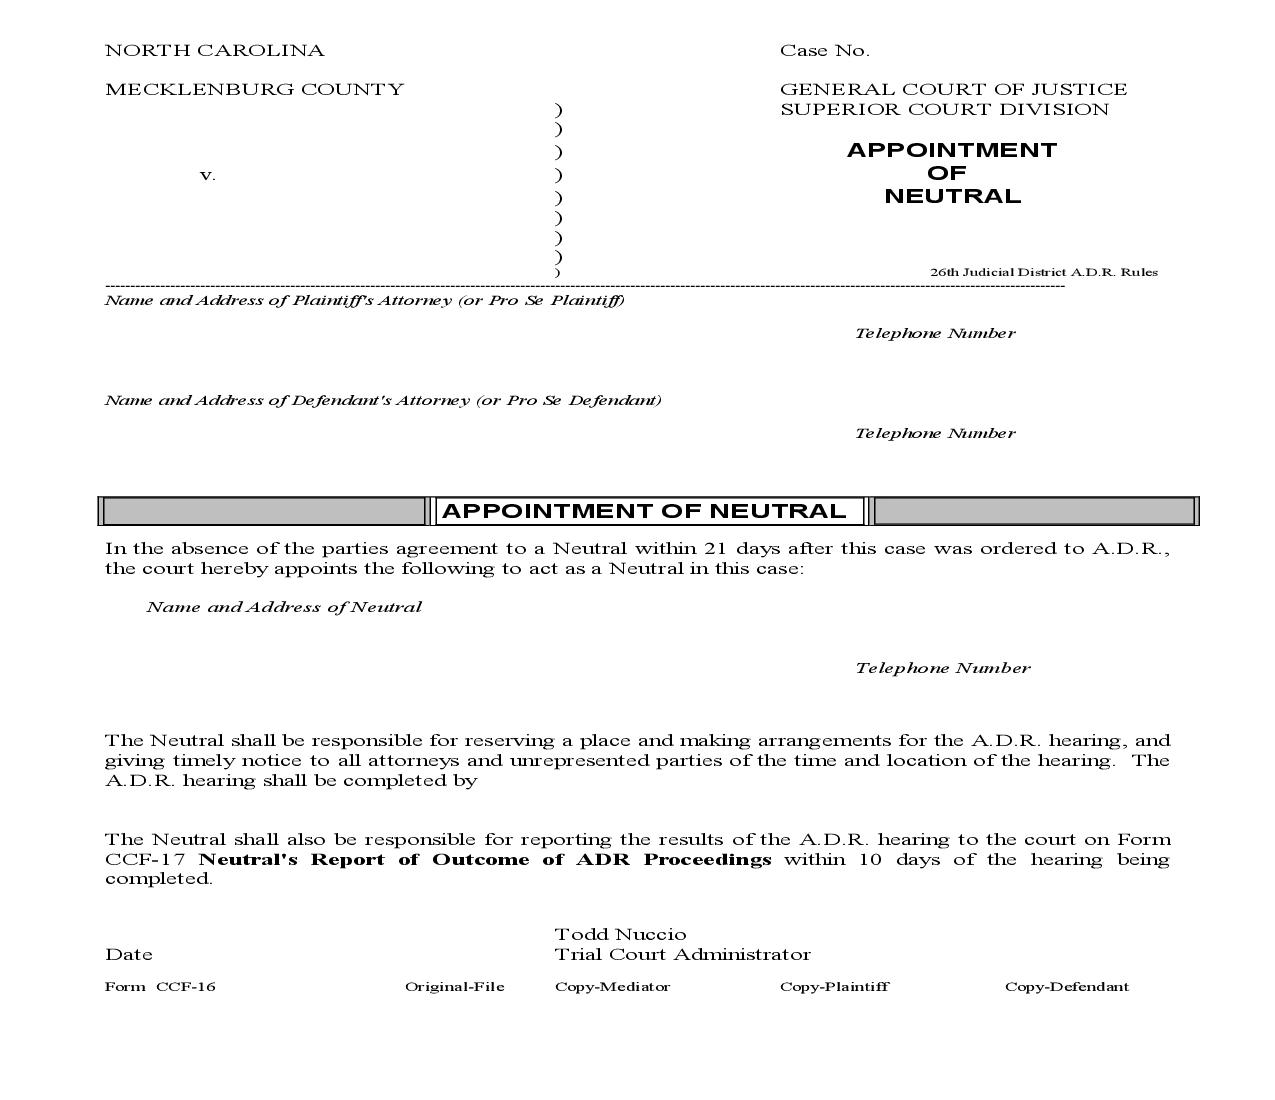 Appointment Of Neutral By Trial Court Administrator {CCF-16} | Pdf Fpdf Doc Docx | North Carolina